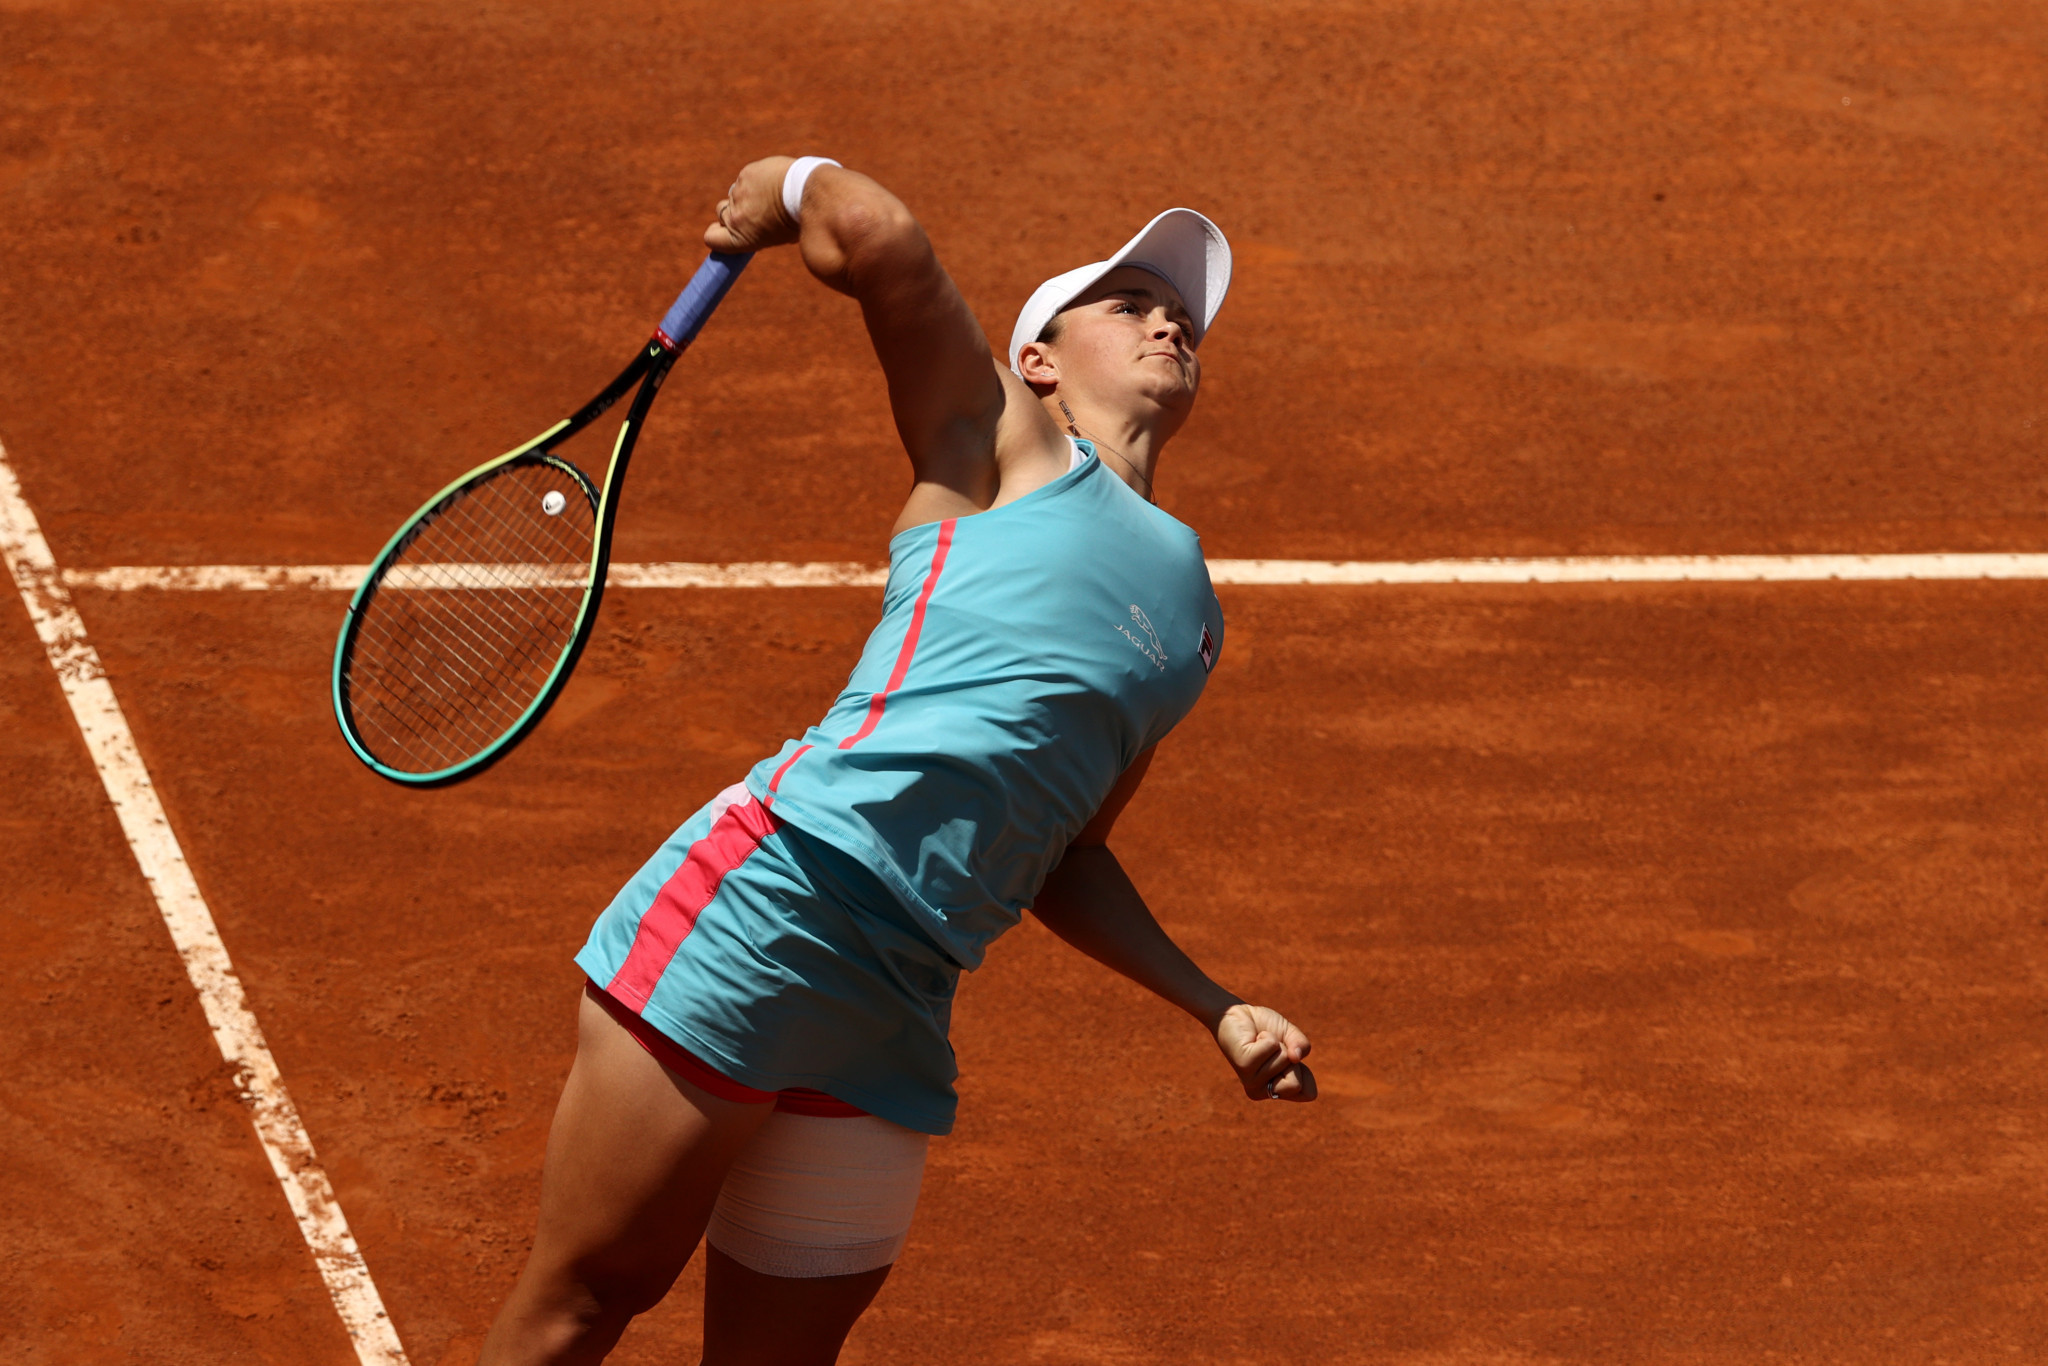 Women's top seed Ashleigh Barty of Australia reached the quarter-finals with a straight sets win in Rome ©Getty Images